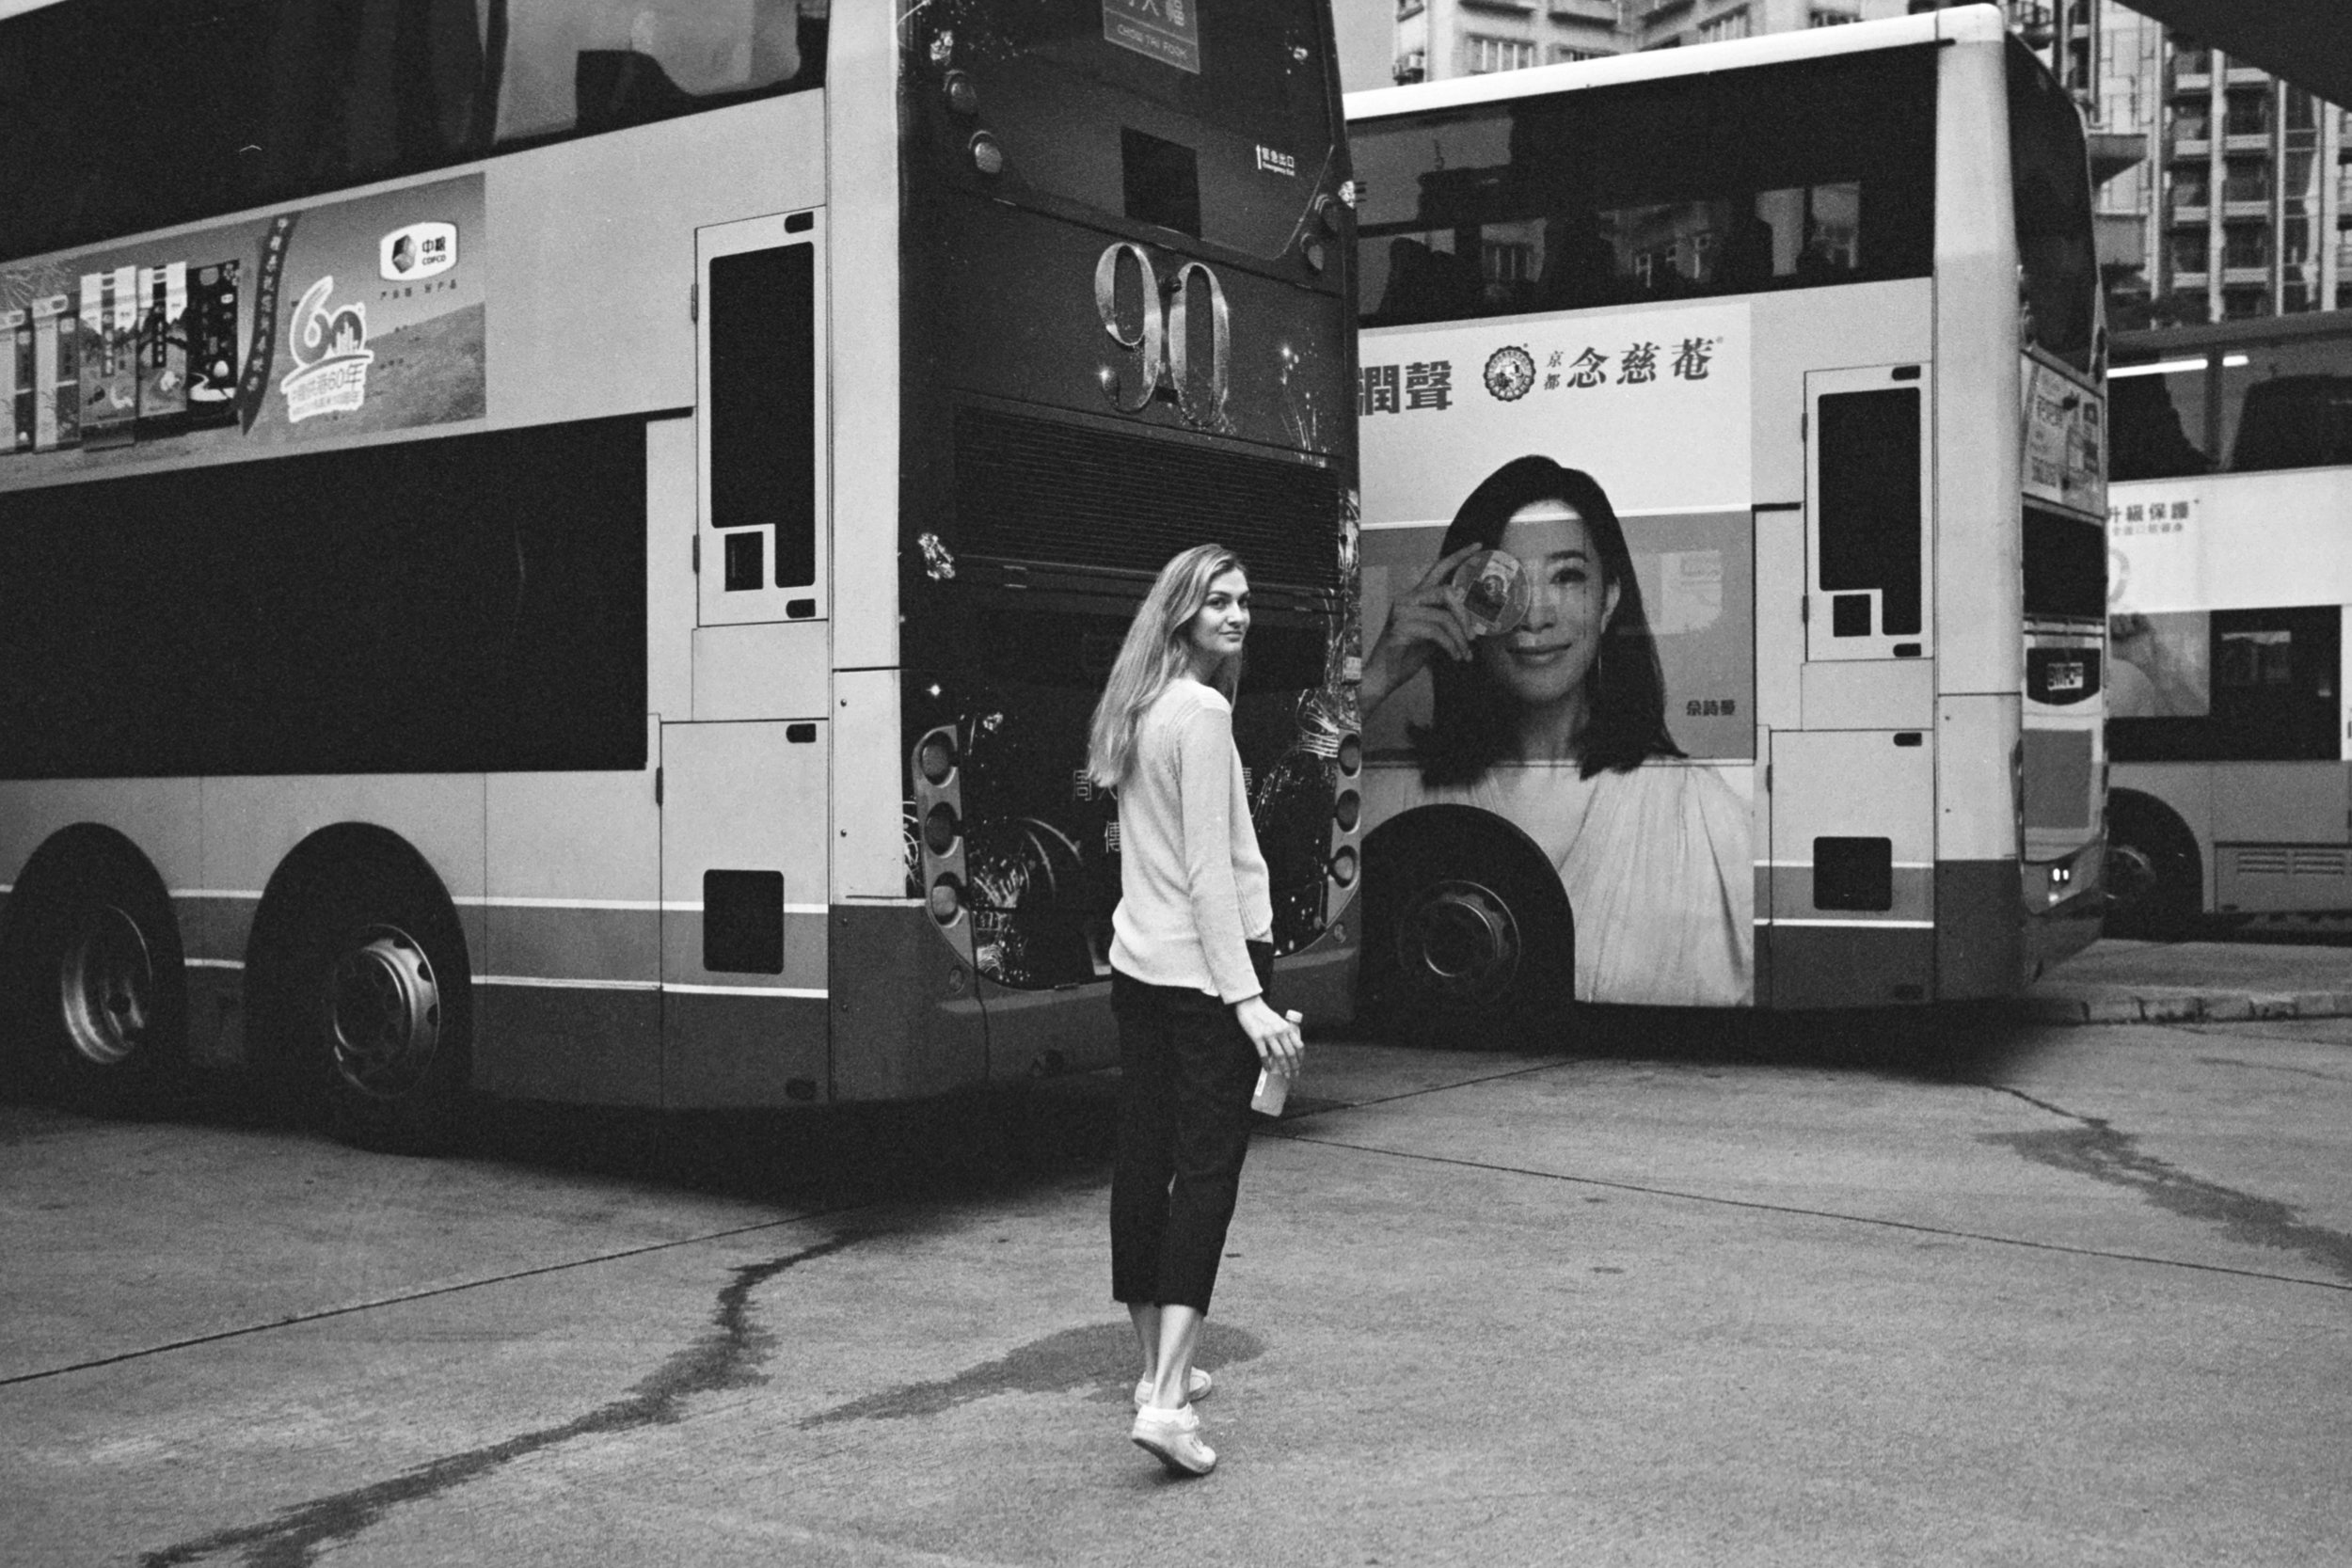 "Leica M6-J + Leica 35mm f/1.4 Summilux-M ""Steel Rim"" + JCH StreetPan 400 - Note - carelessness in haste made me miss the photobombing from the background poster on the bus. Nearing my two hour limit, my endurance is always stretched."